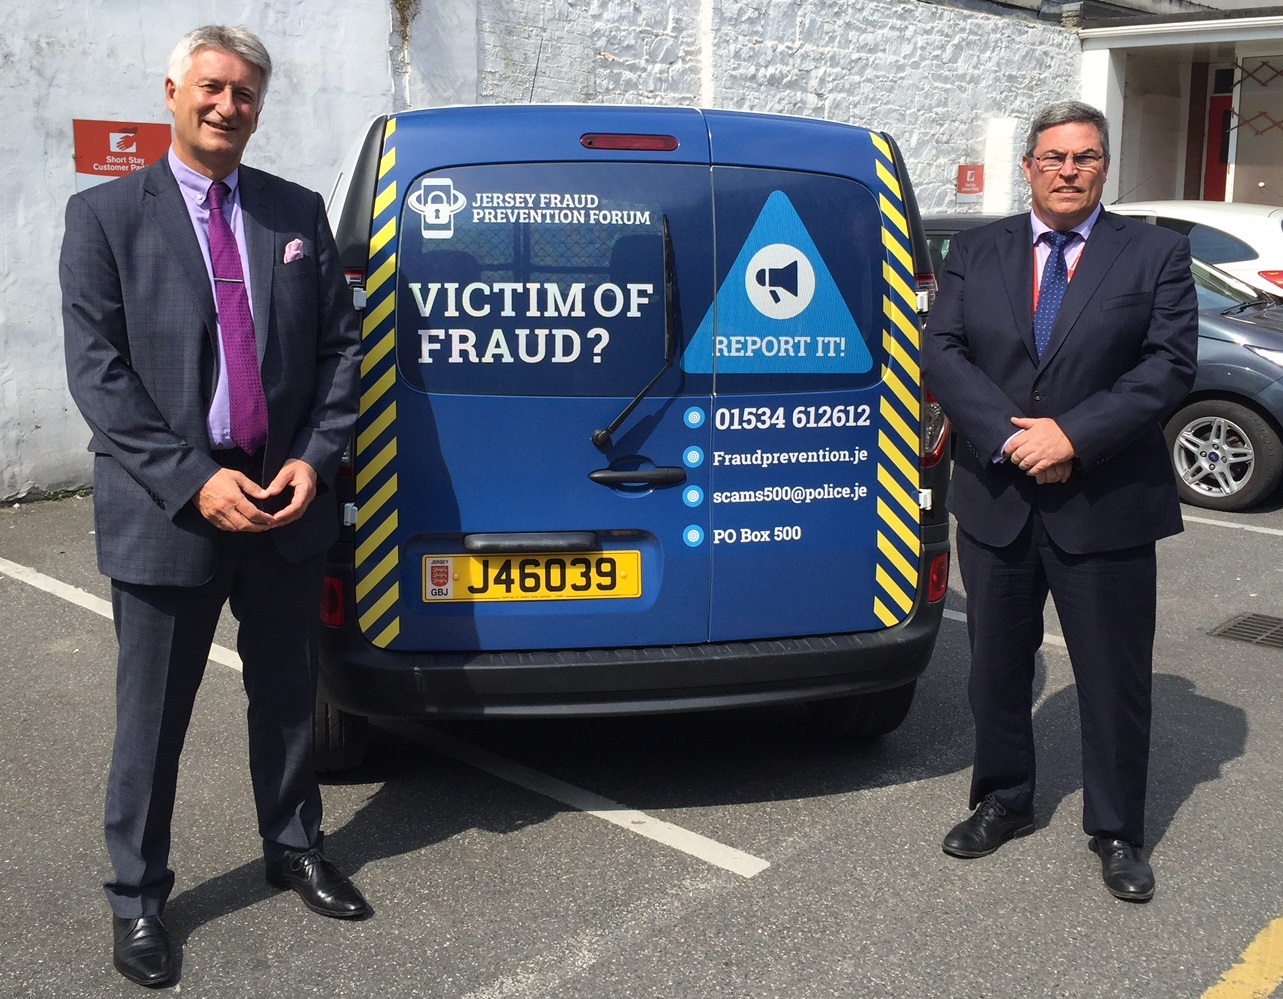 Jersey Fraud Prevention Forum campaign hits the road